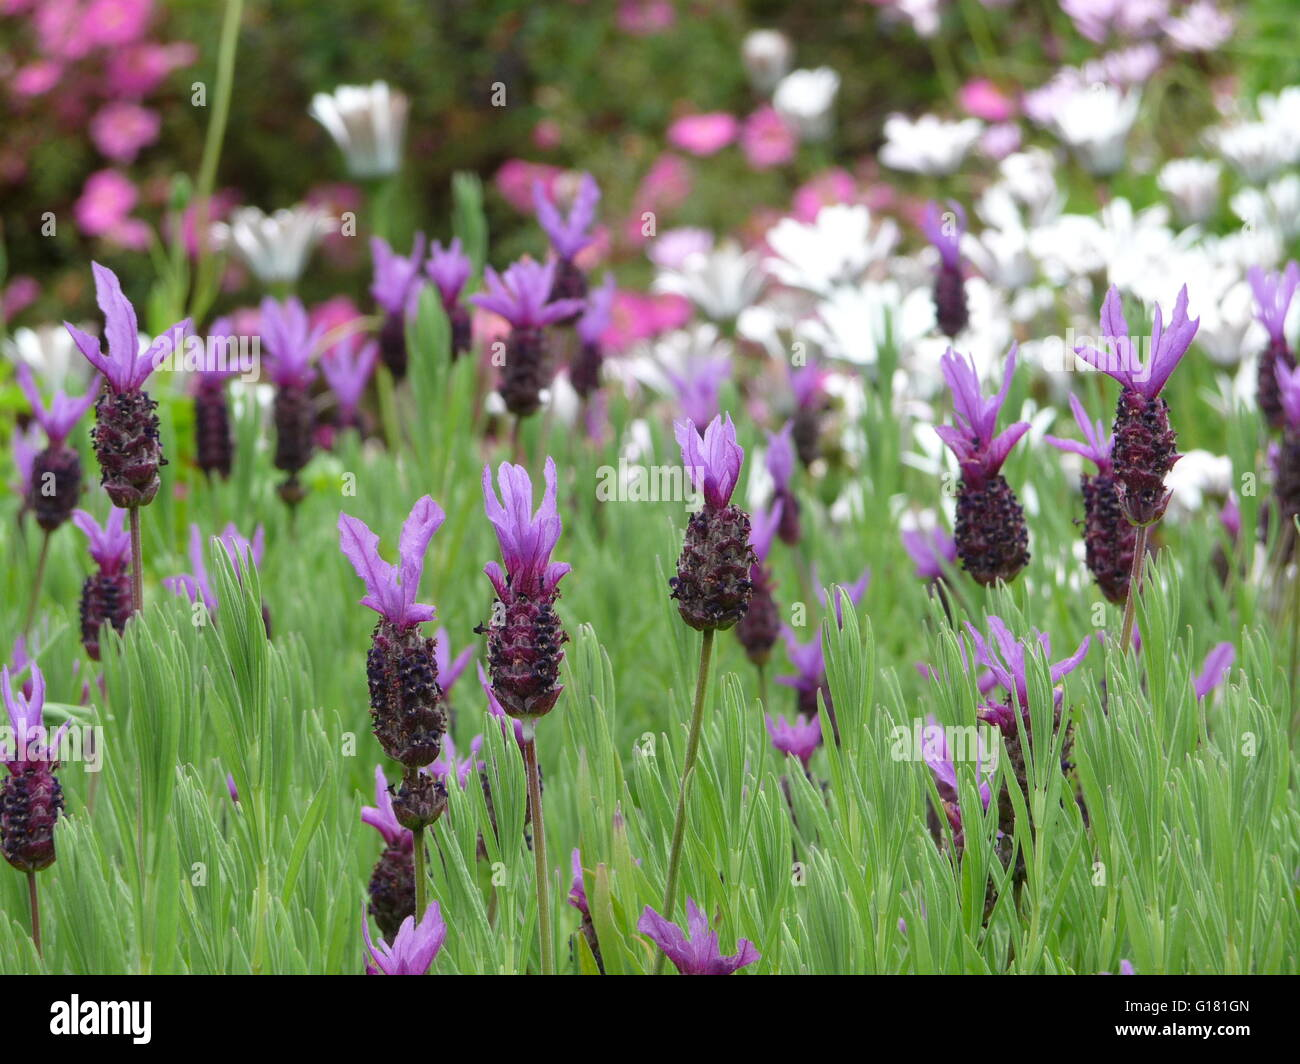 Flowering French lavender plants and wild flowers Stock Photo ...